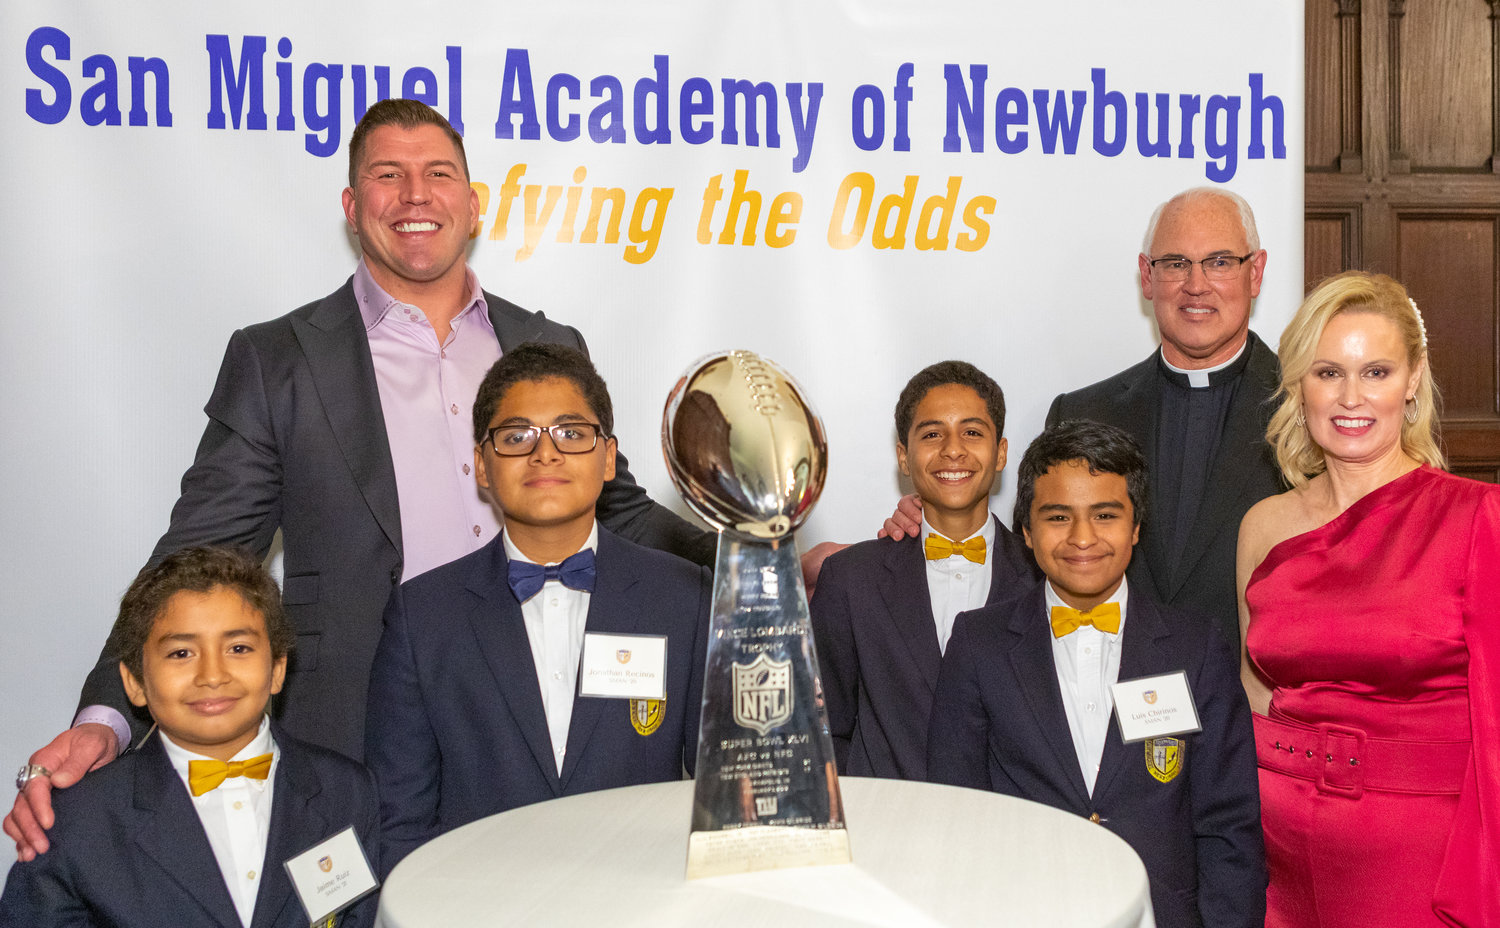 WINNING SMILES—At the Defying the Odds dinner Oct. 25 were former New York Giants player David Diehl; students Jamie Ruiz, Christopher Recinos, Jonathan Recinos and Luis Churinos; Father Mark Connell, executive director of San Miguel Academy; and honoree Ann Mara Cacase. The Vince Lombardi trophy is from the Giants' win in Super Bowl XLVI in 2012.